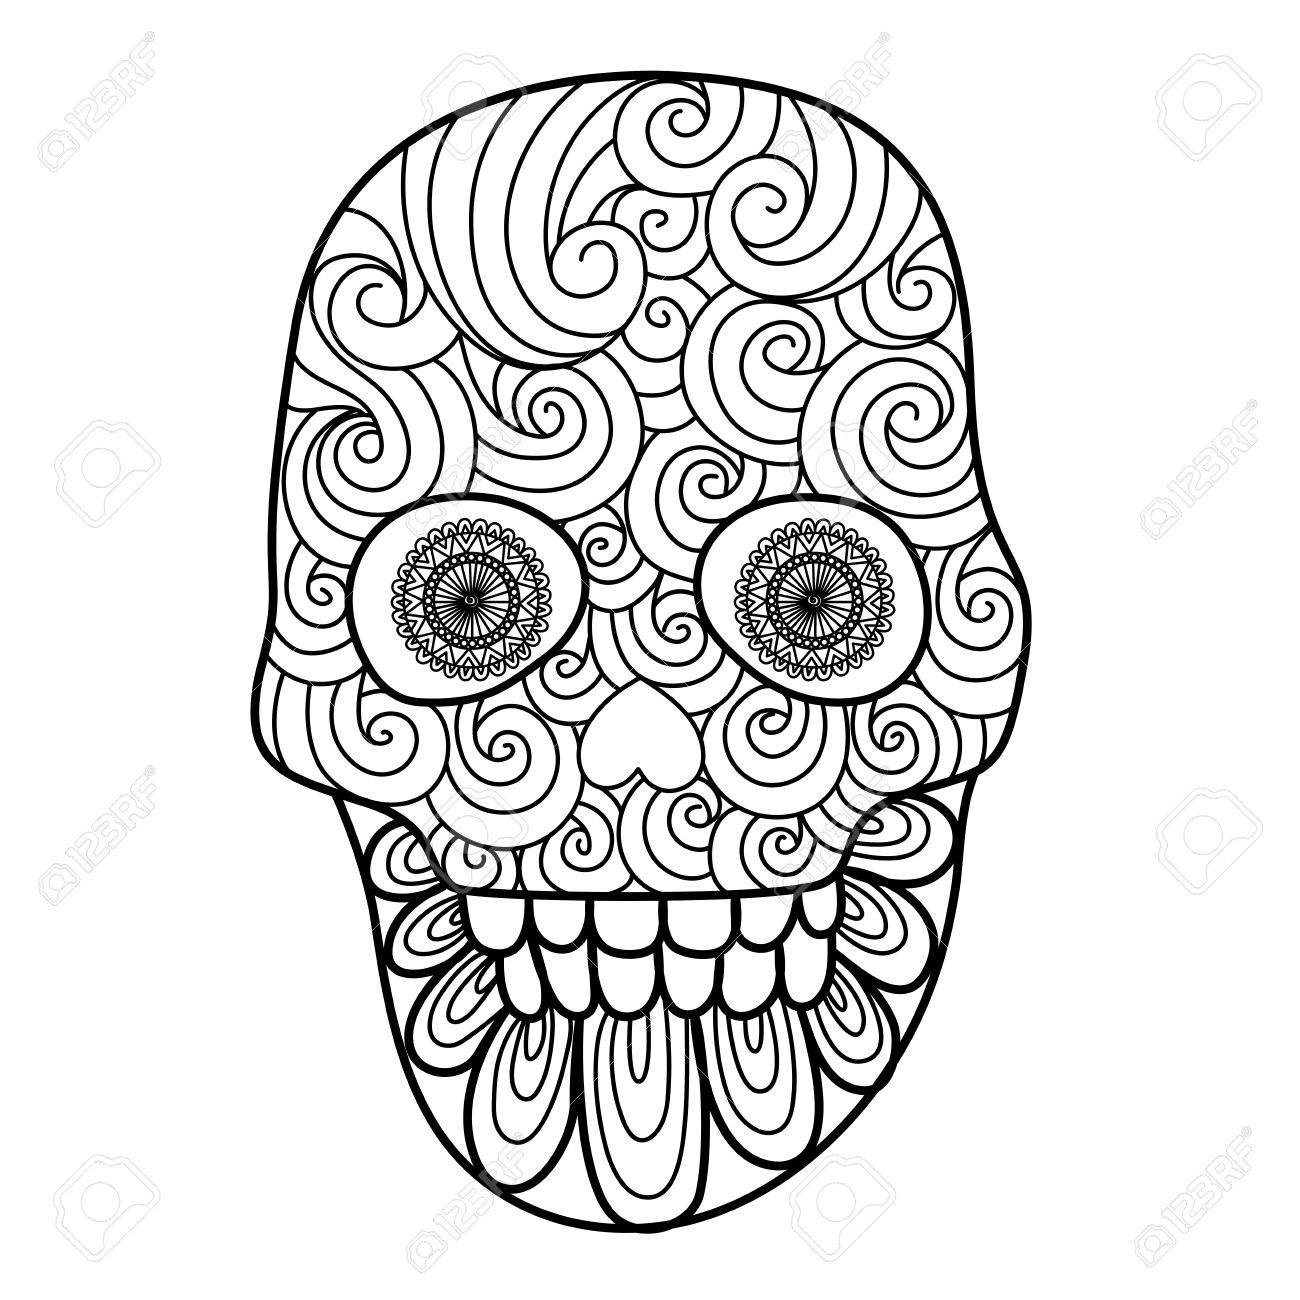 Lines Art Design Of Unique Skull For Adult Coloring Pages,tattoo ...